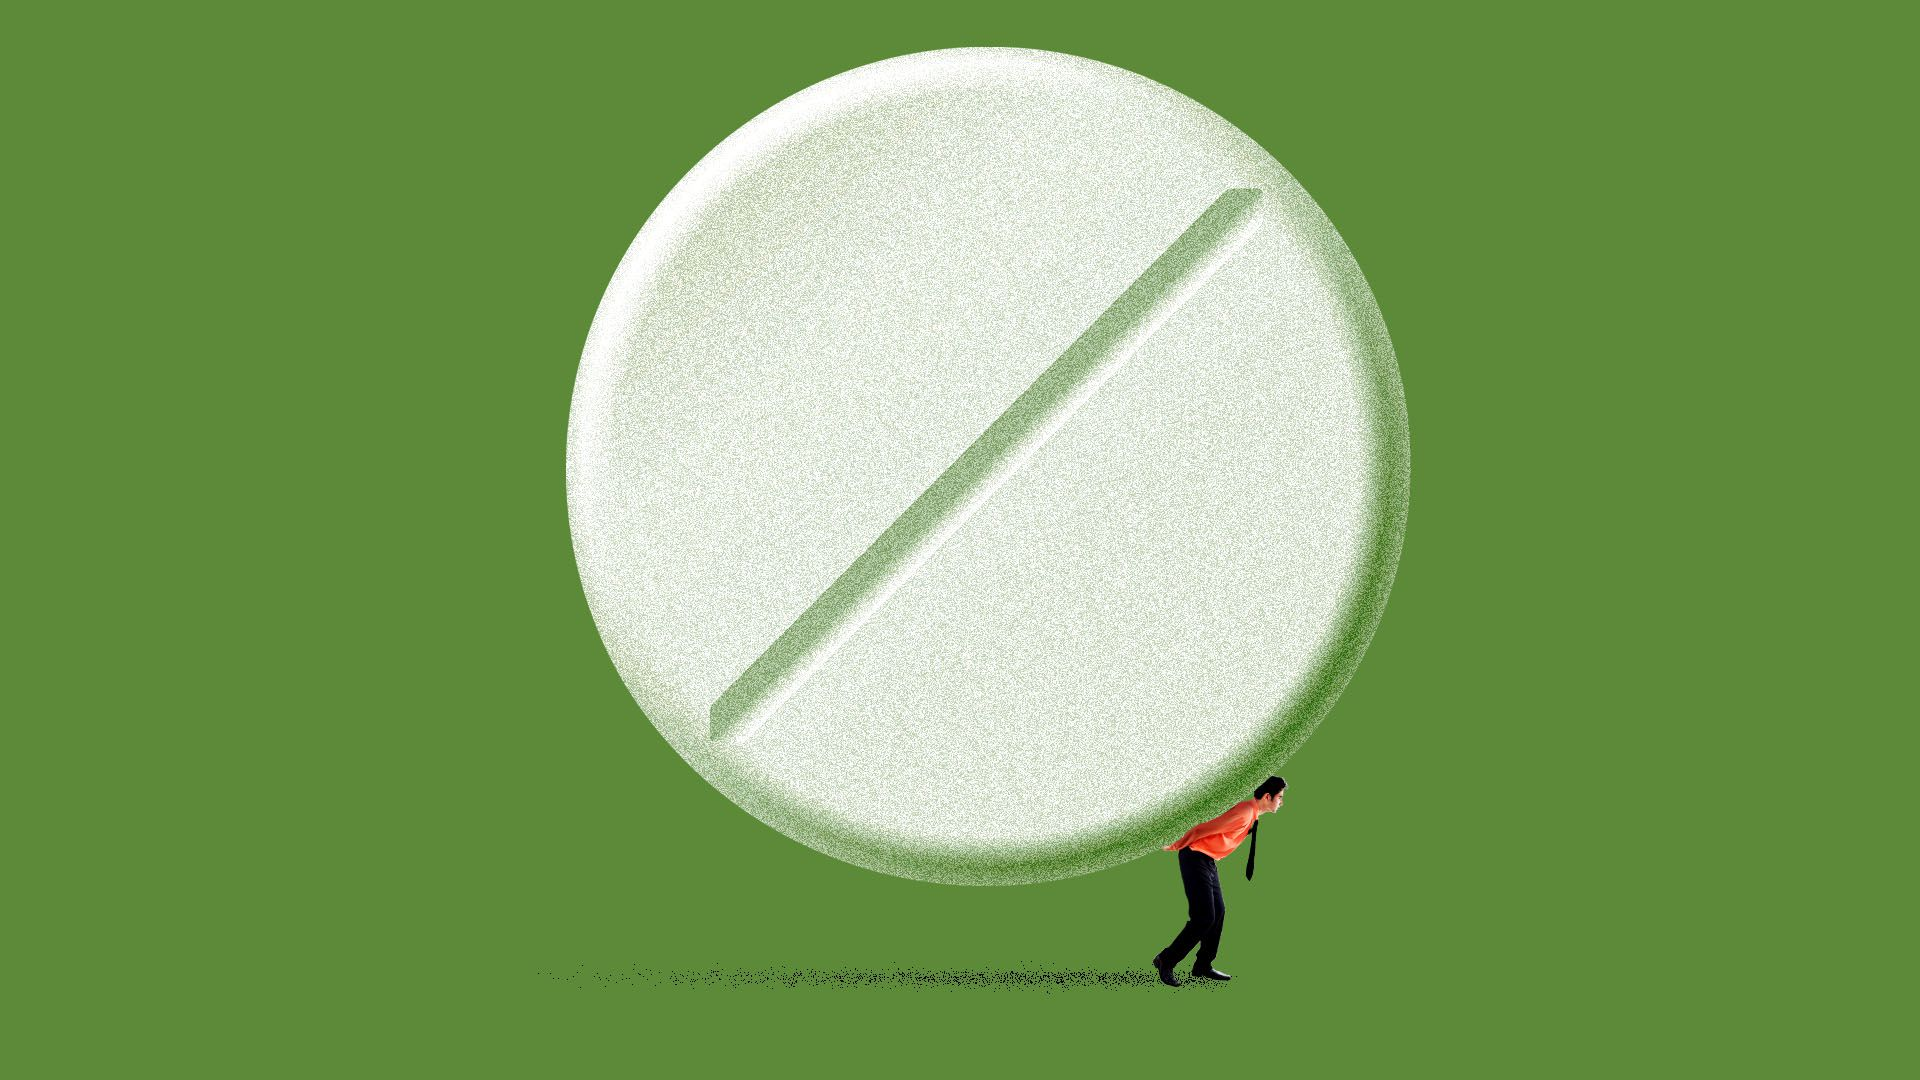 Illustration of a small employer carrying a giant pill on his back